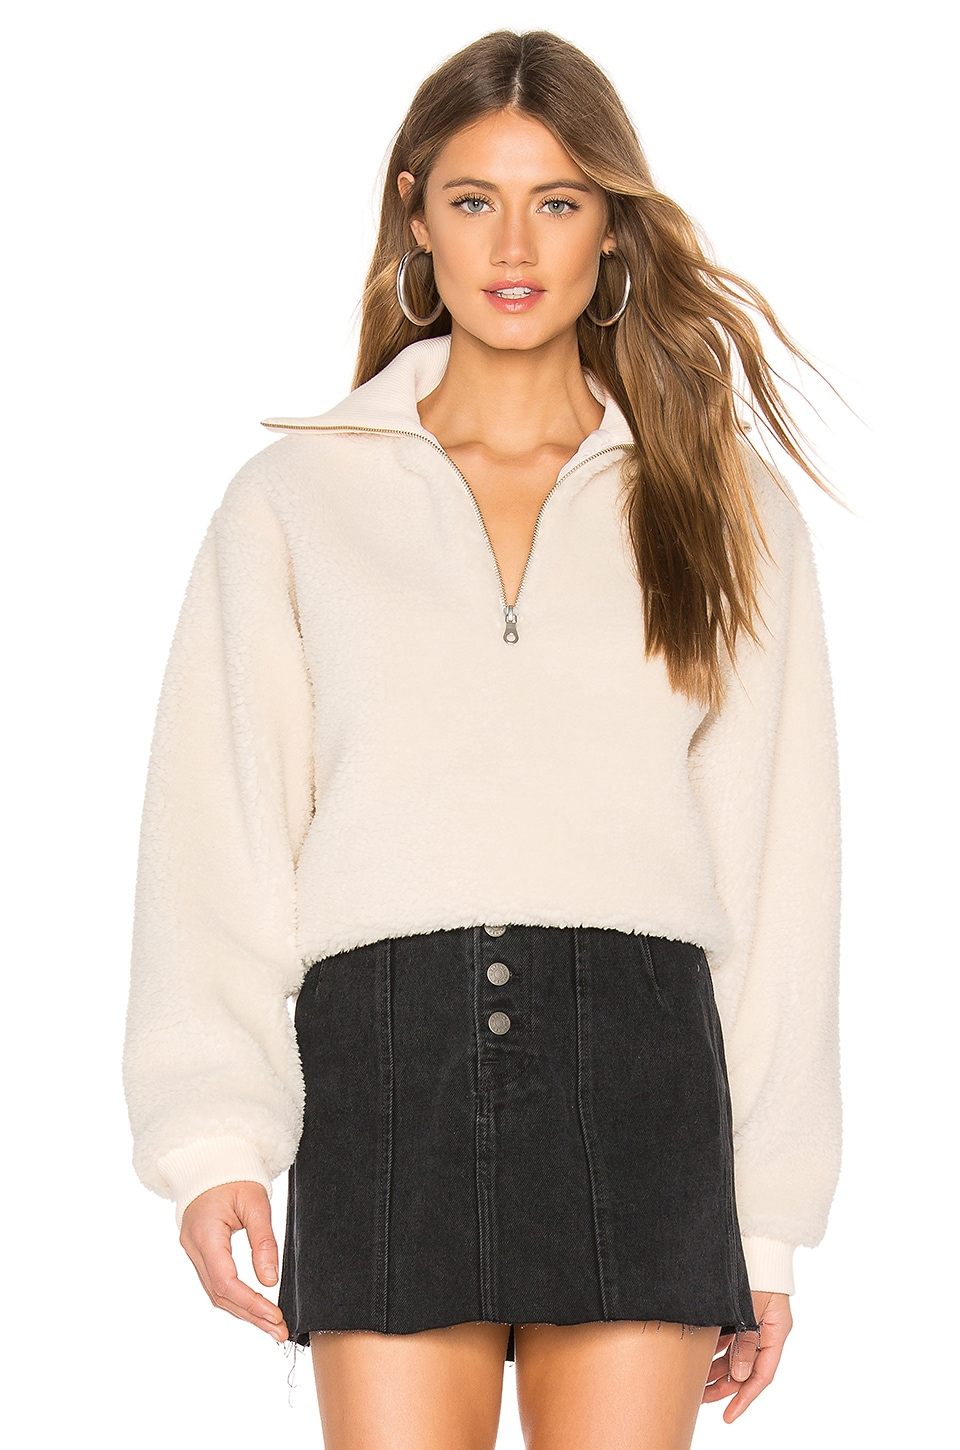 Lovers + Friends Jamey Zip Pullover in Creme Brulee